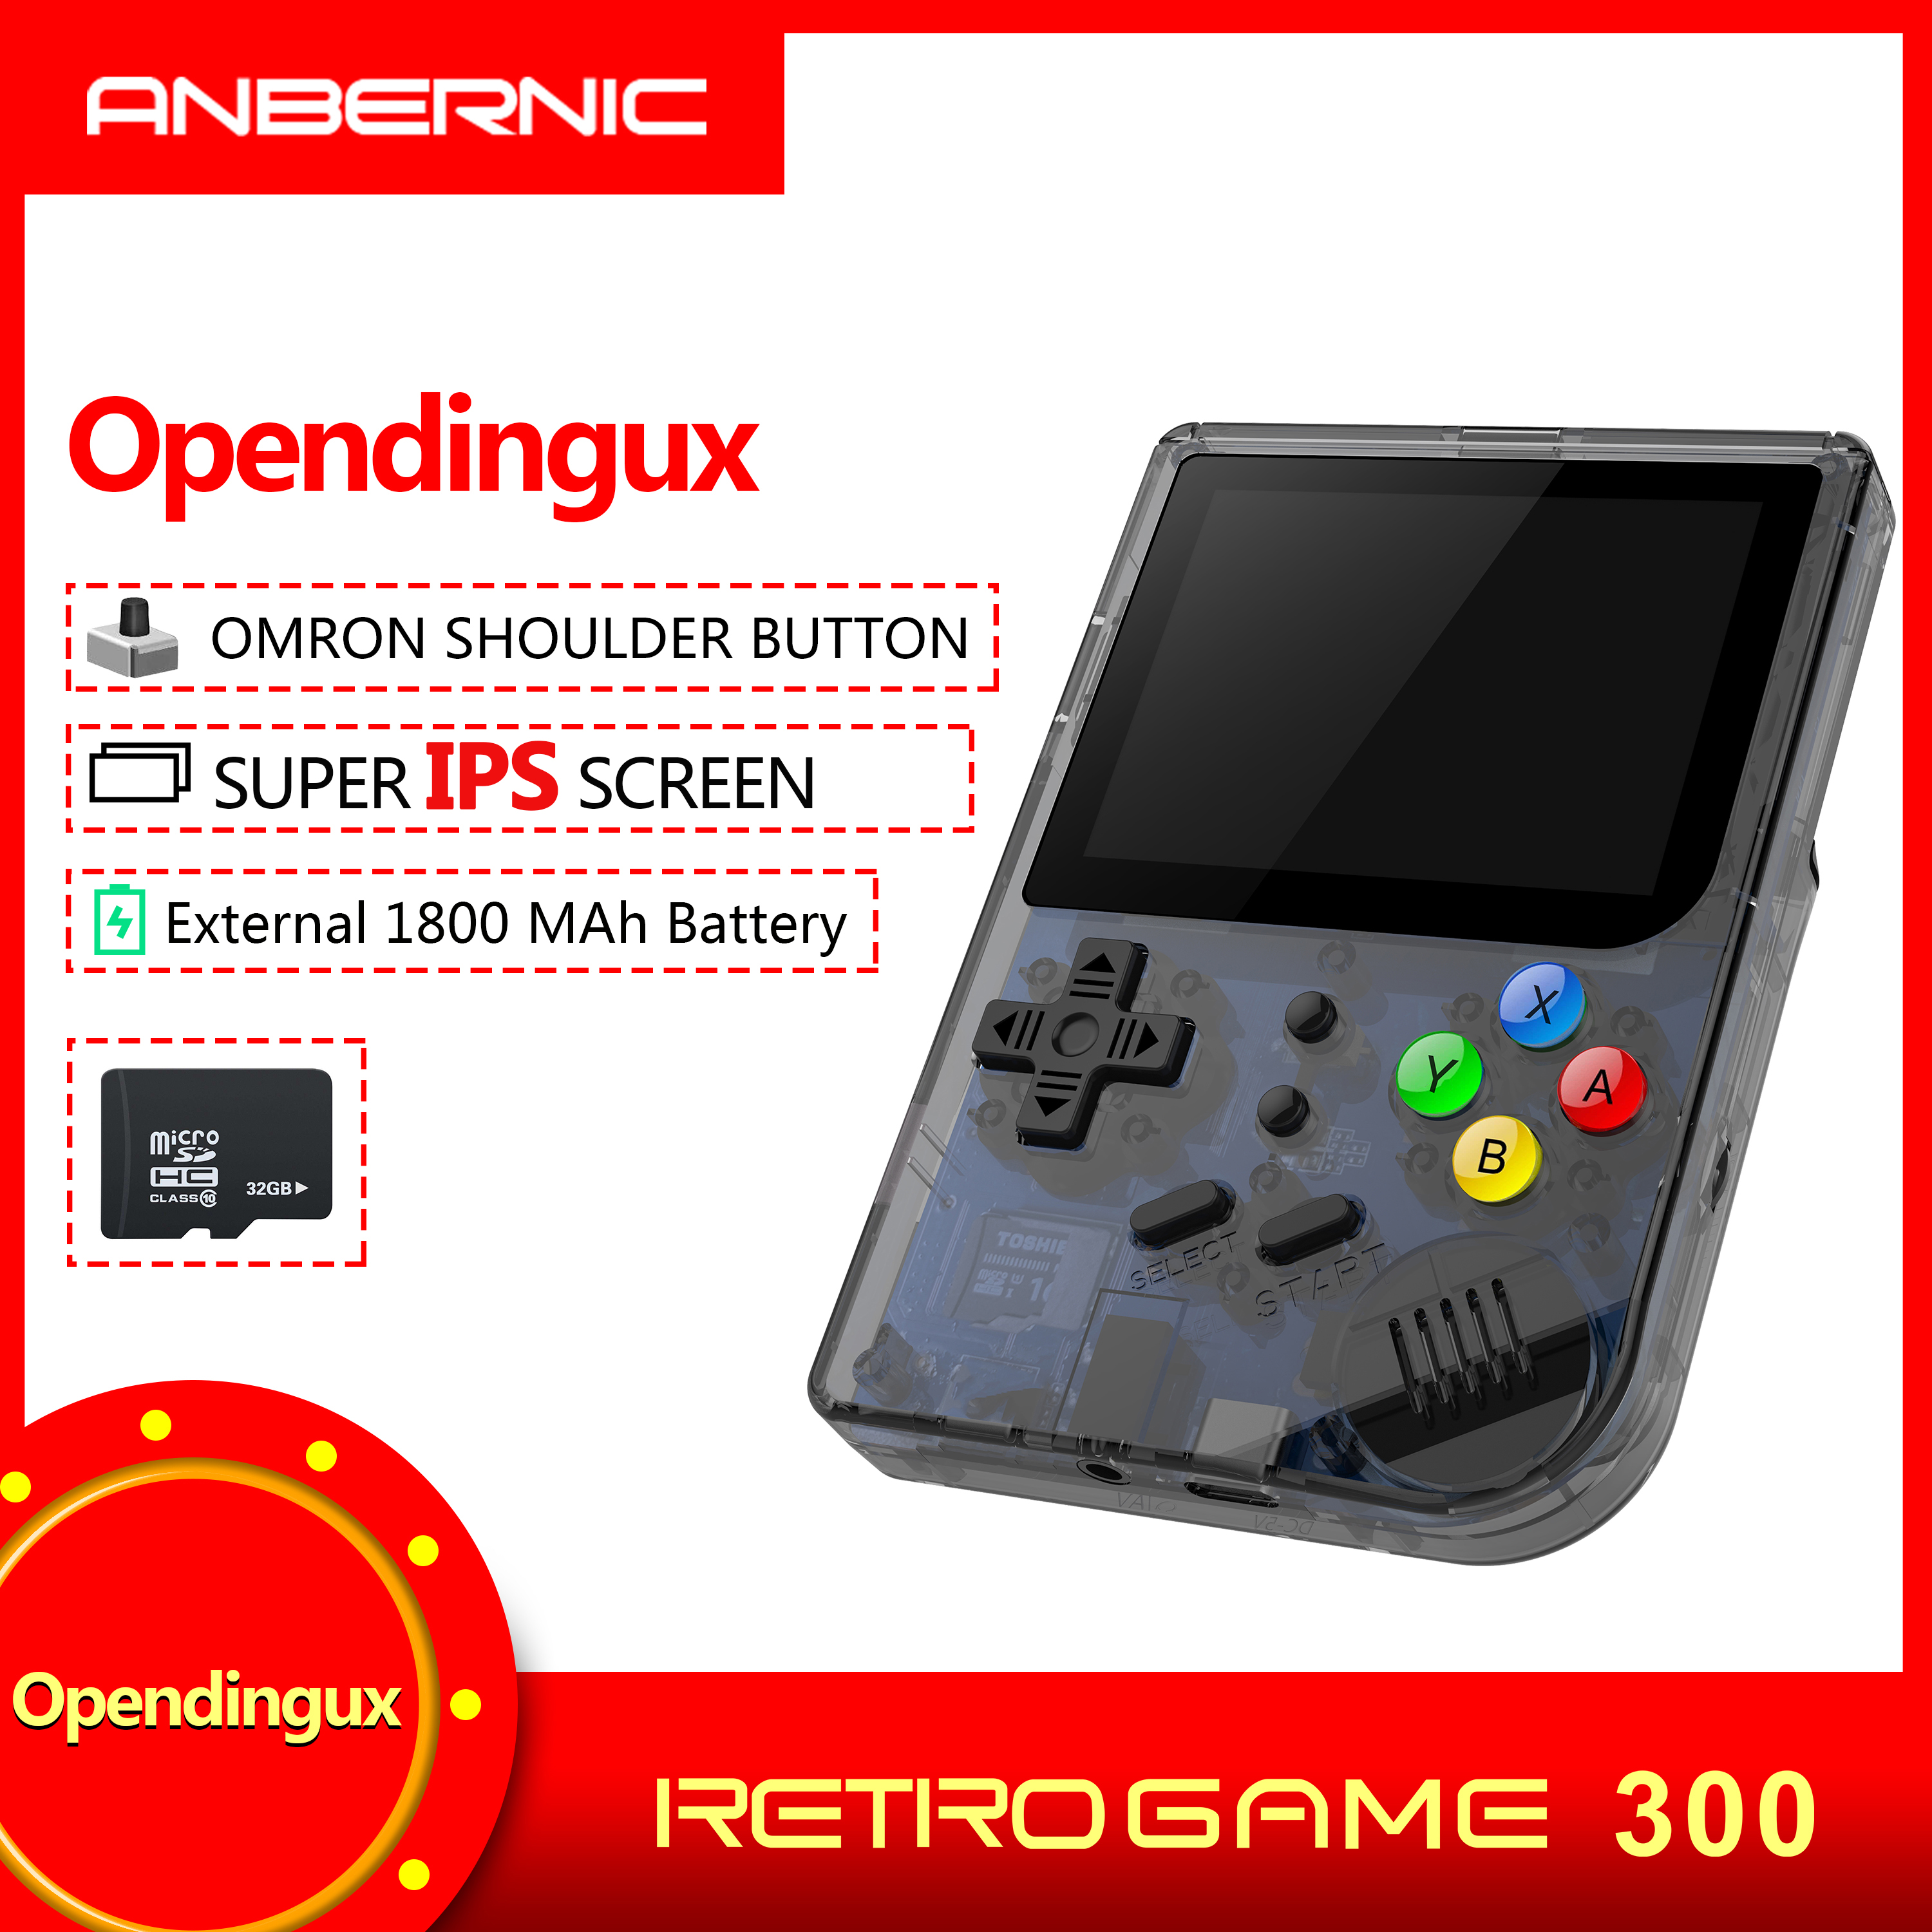 2019 rg300 INCH Video games Portable Retro FC console Game Handheld Games Console Player RG 300 16G 3000 GAMES Tony system